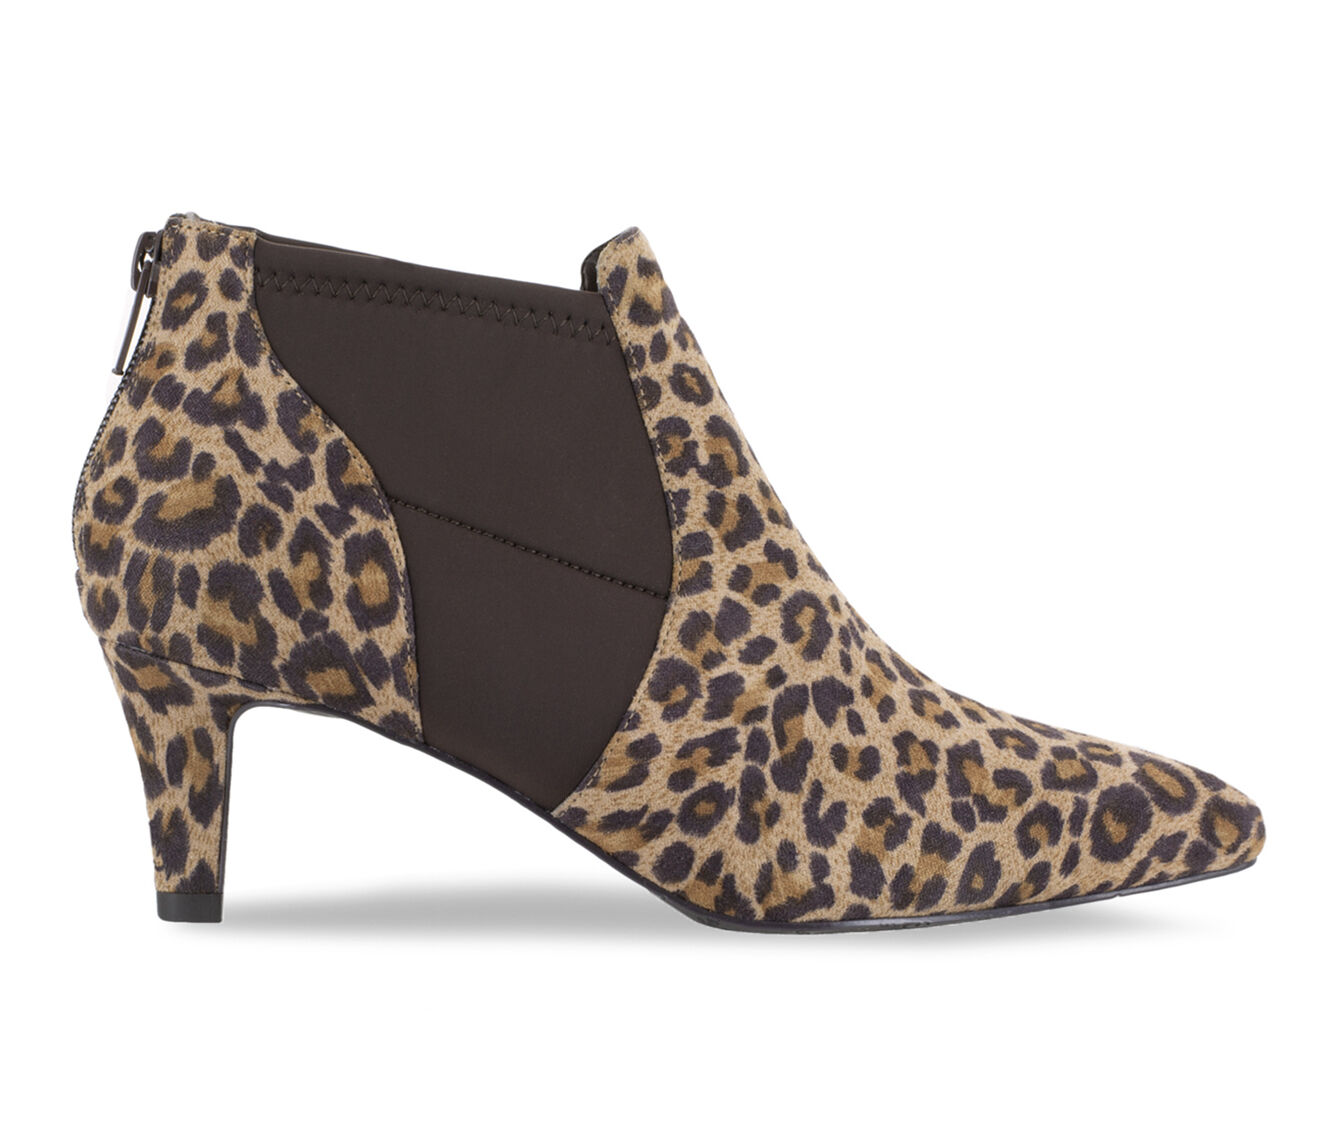 a huge selection of Women's Easy Street Saint Booties Leopard Suede